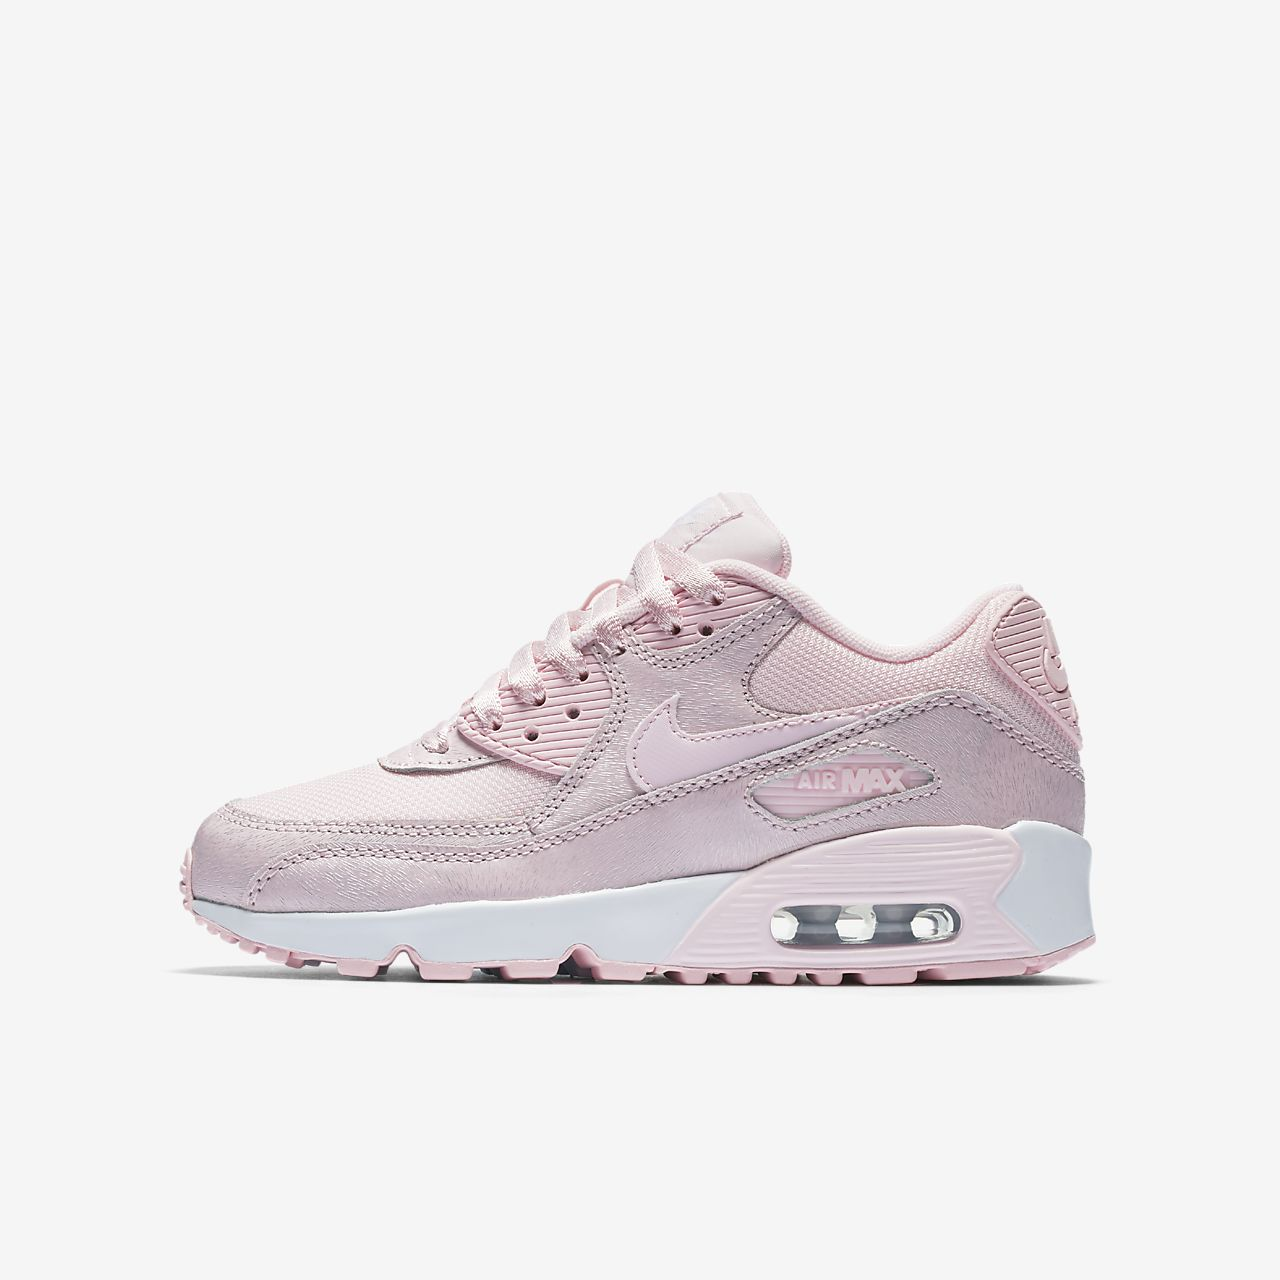 nike air max 90 pink grey white nz